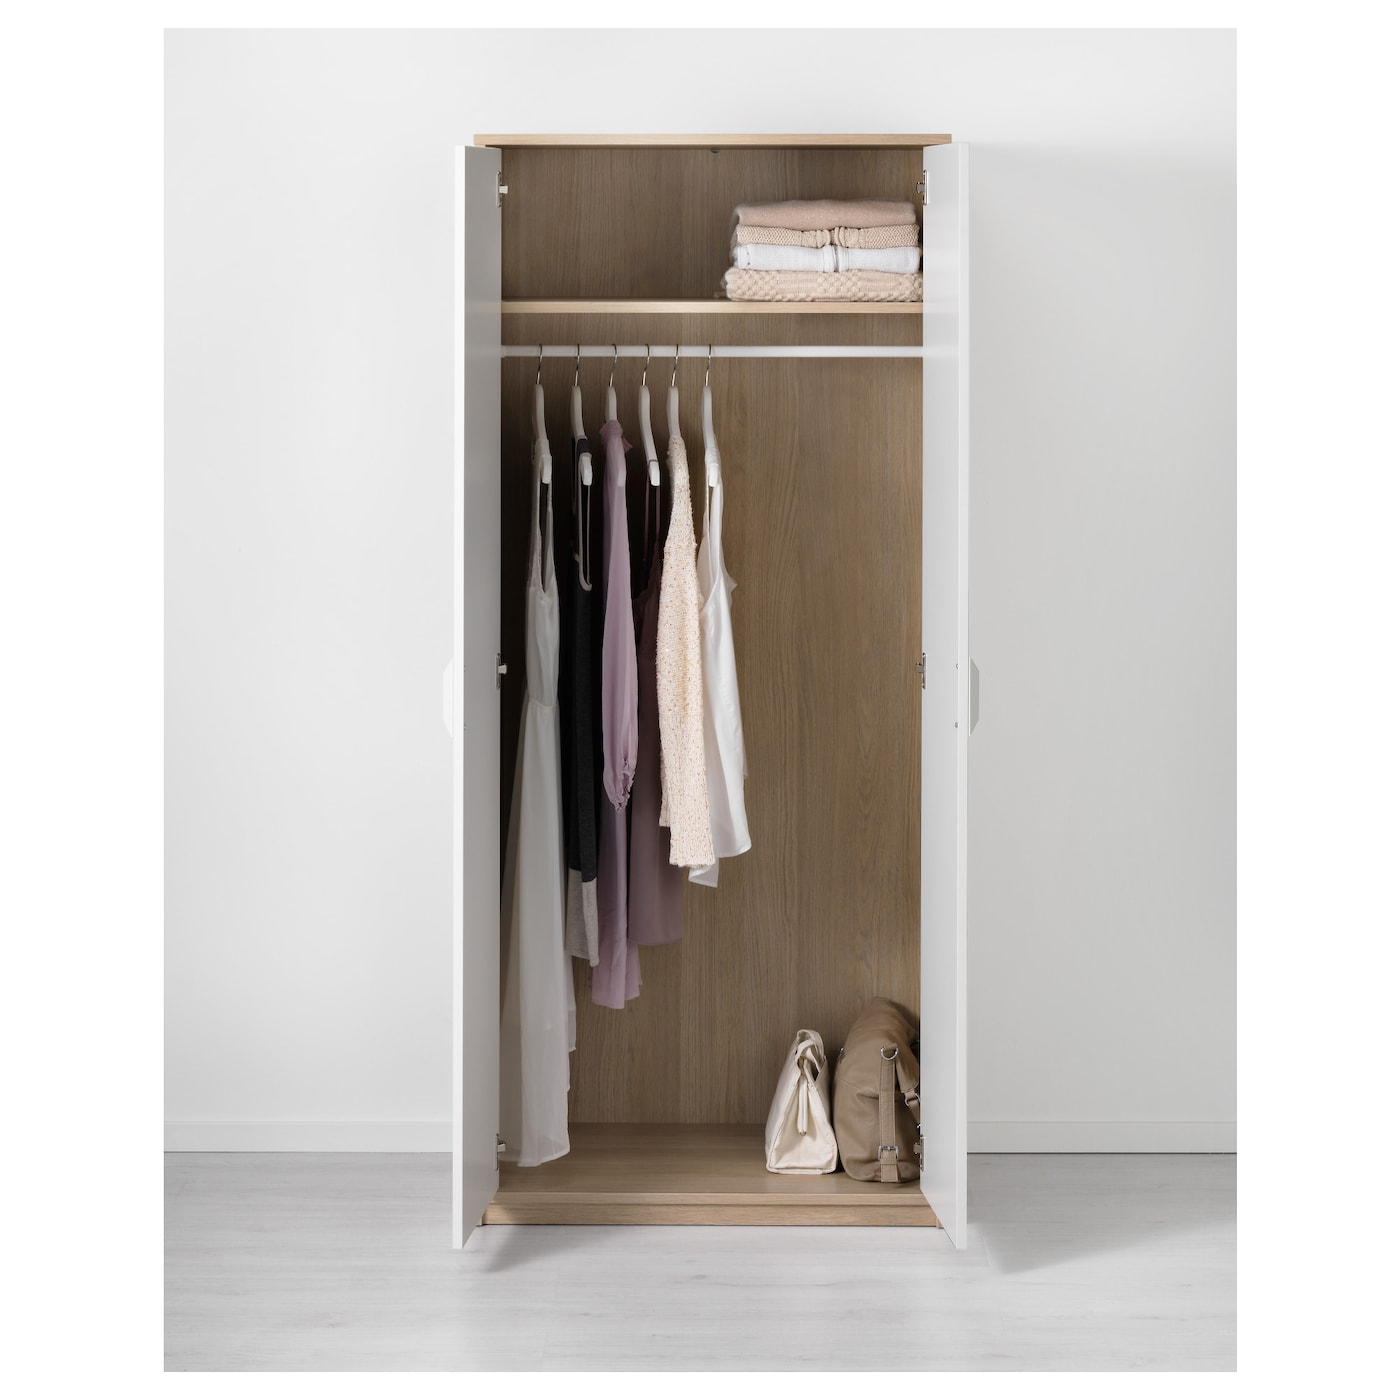 ASKVOLL Wardrobe White Stained Oak Effect/white 80 X 52 X